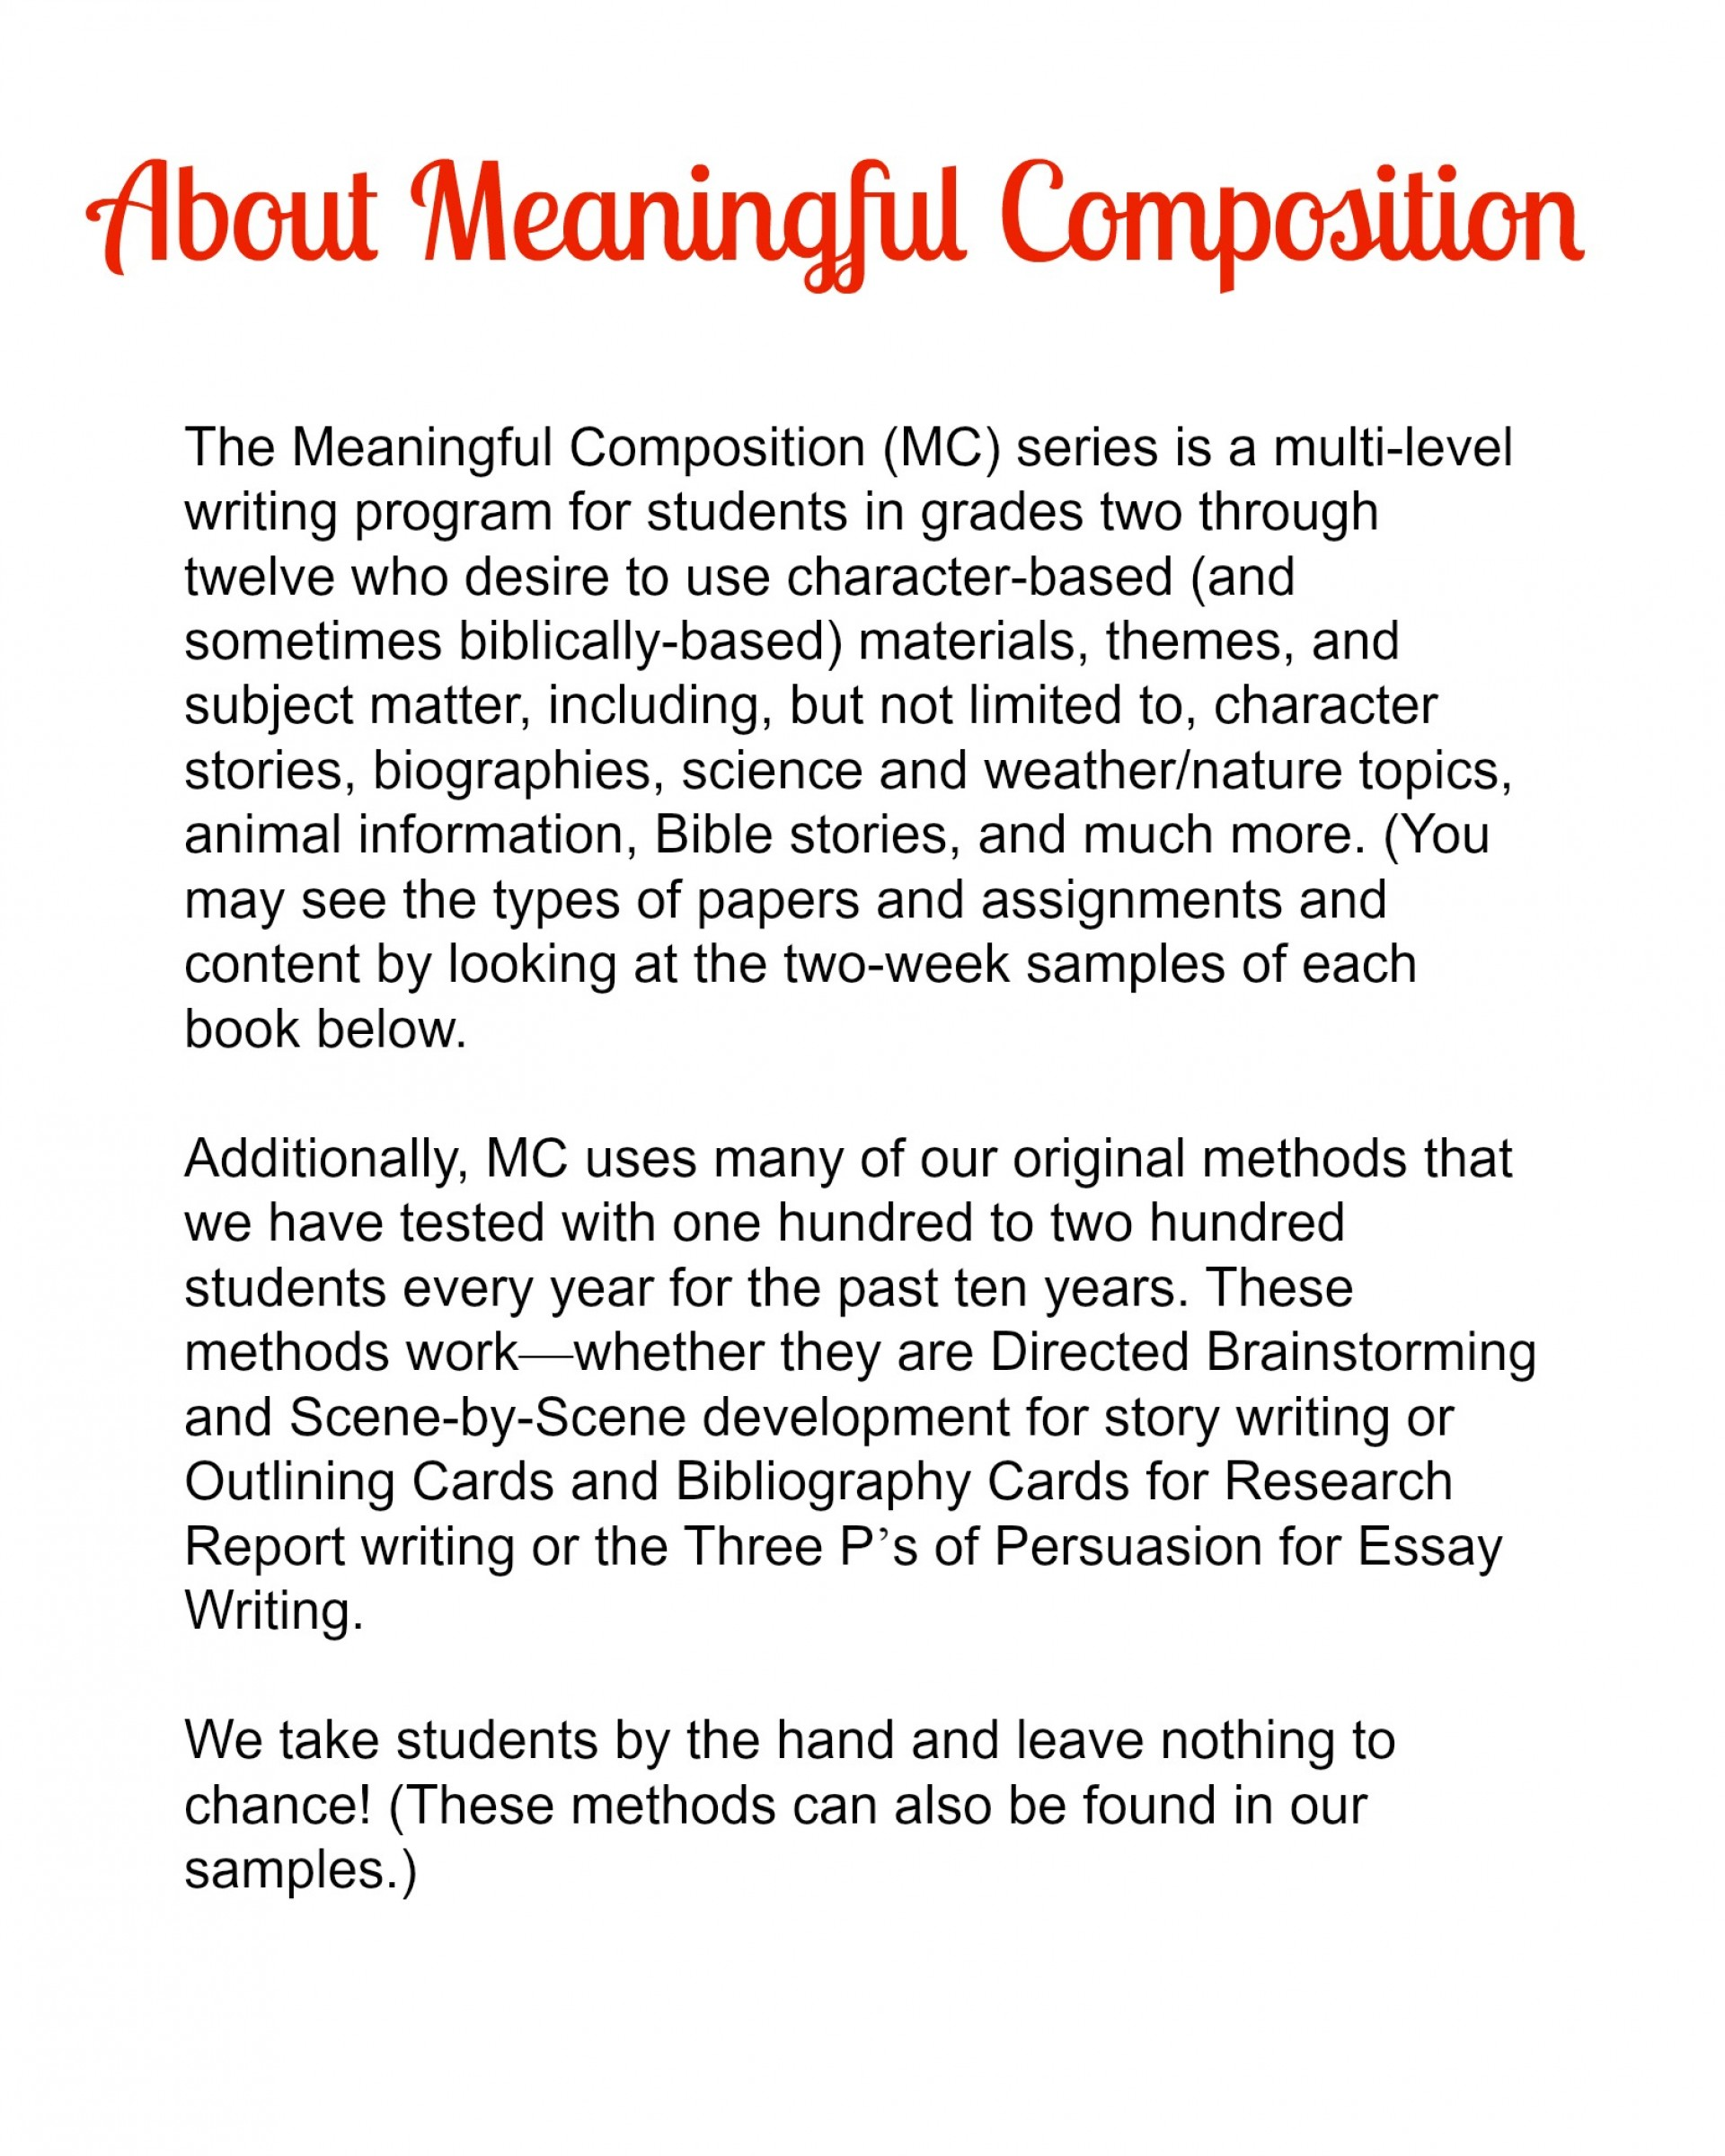 025 Expository Essays Of Introductions Creative Writing Course Paragraph Persuasive On Bullying About Meaningful Compos Cyber How To Prevent Five Stupendous Examples Essay Prompts 5th Grade Pdf For High School 1920